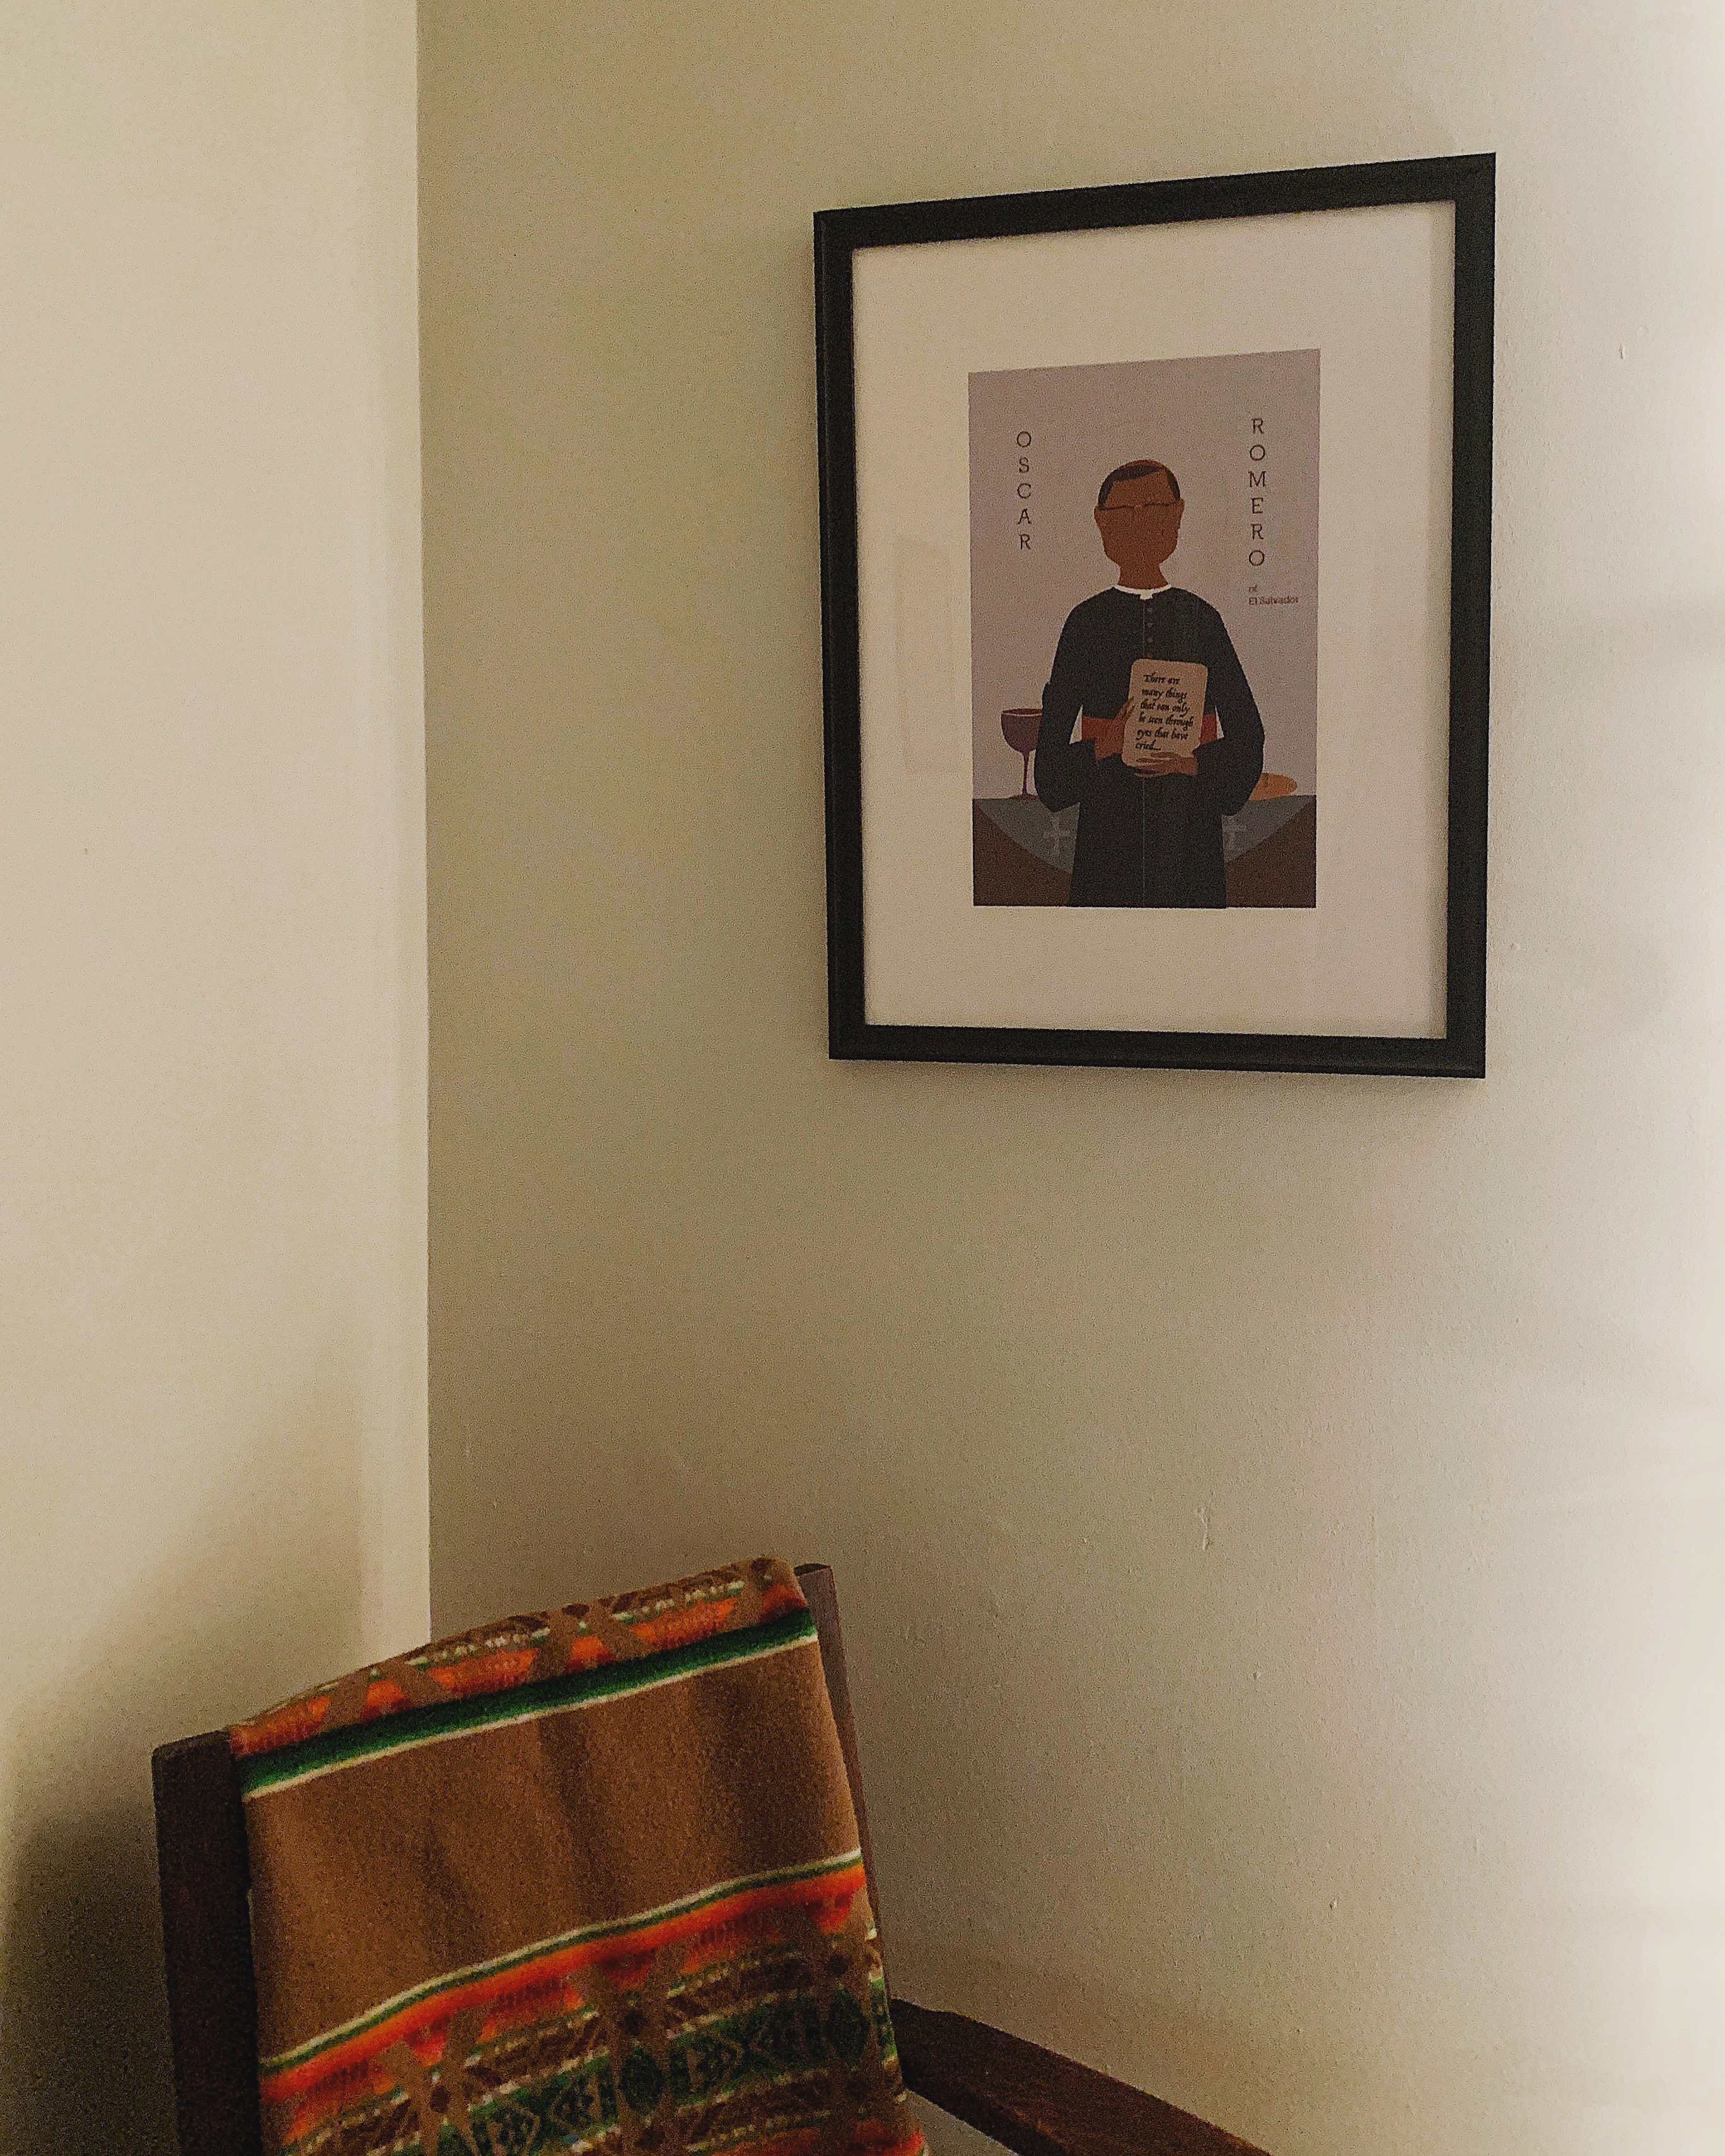 Framed print by Sarah Duet of Oscar Romero above a brown chair with a Pendleton blanket draped over the chair.